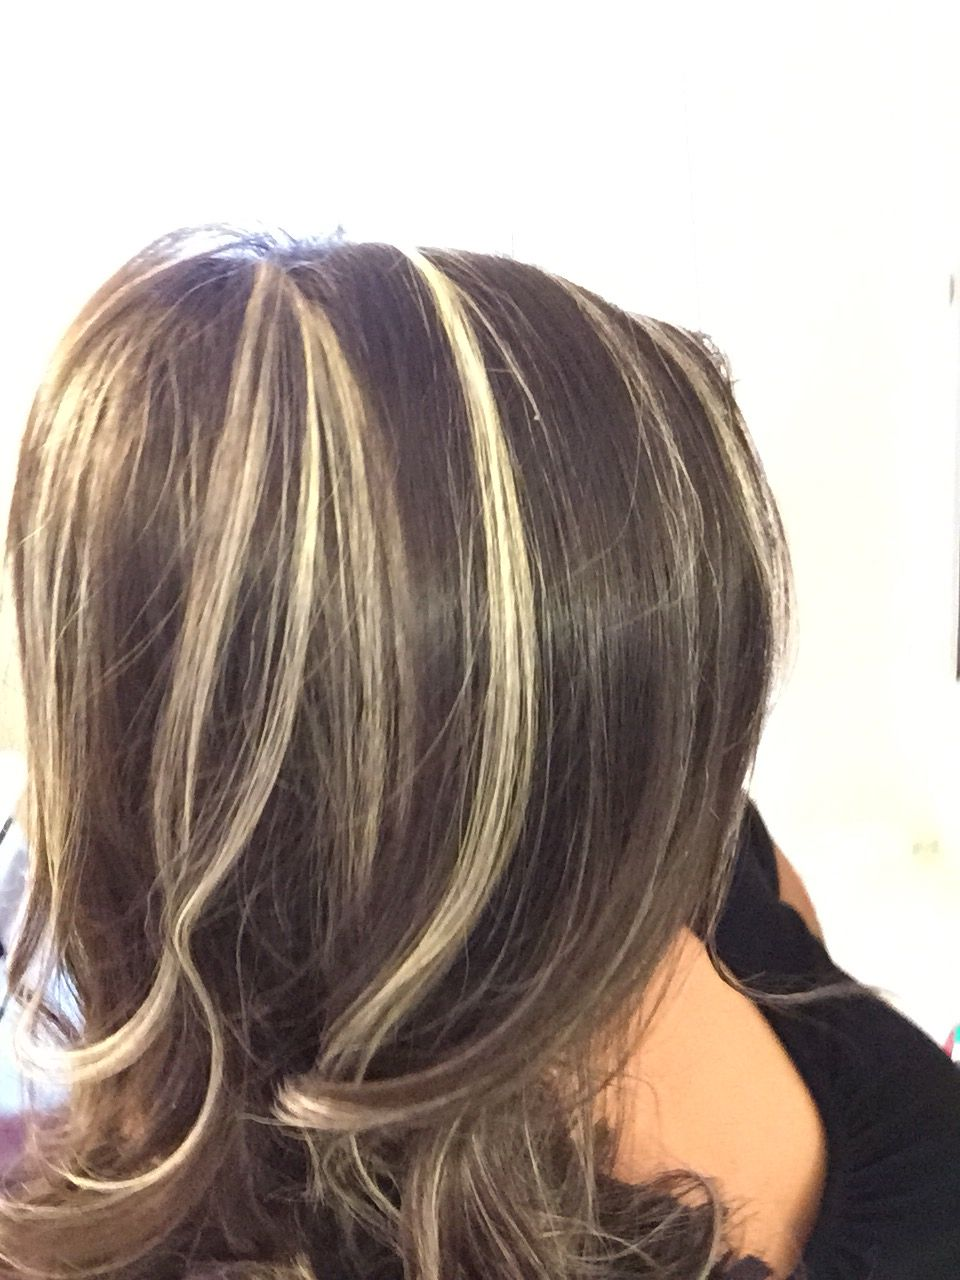 Blonde Highlights on dark brown hair I totally love my